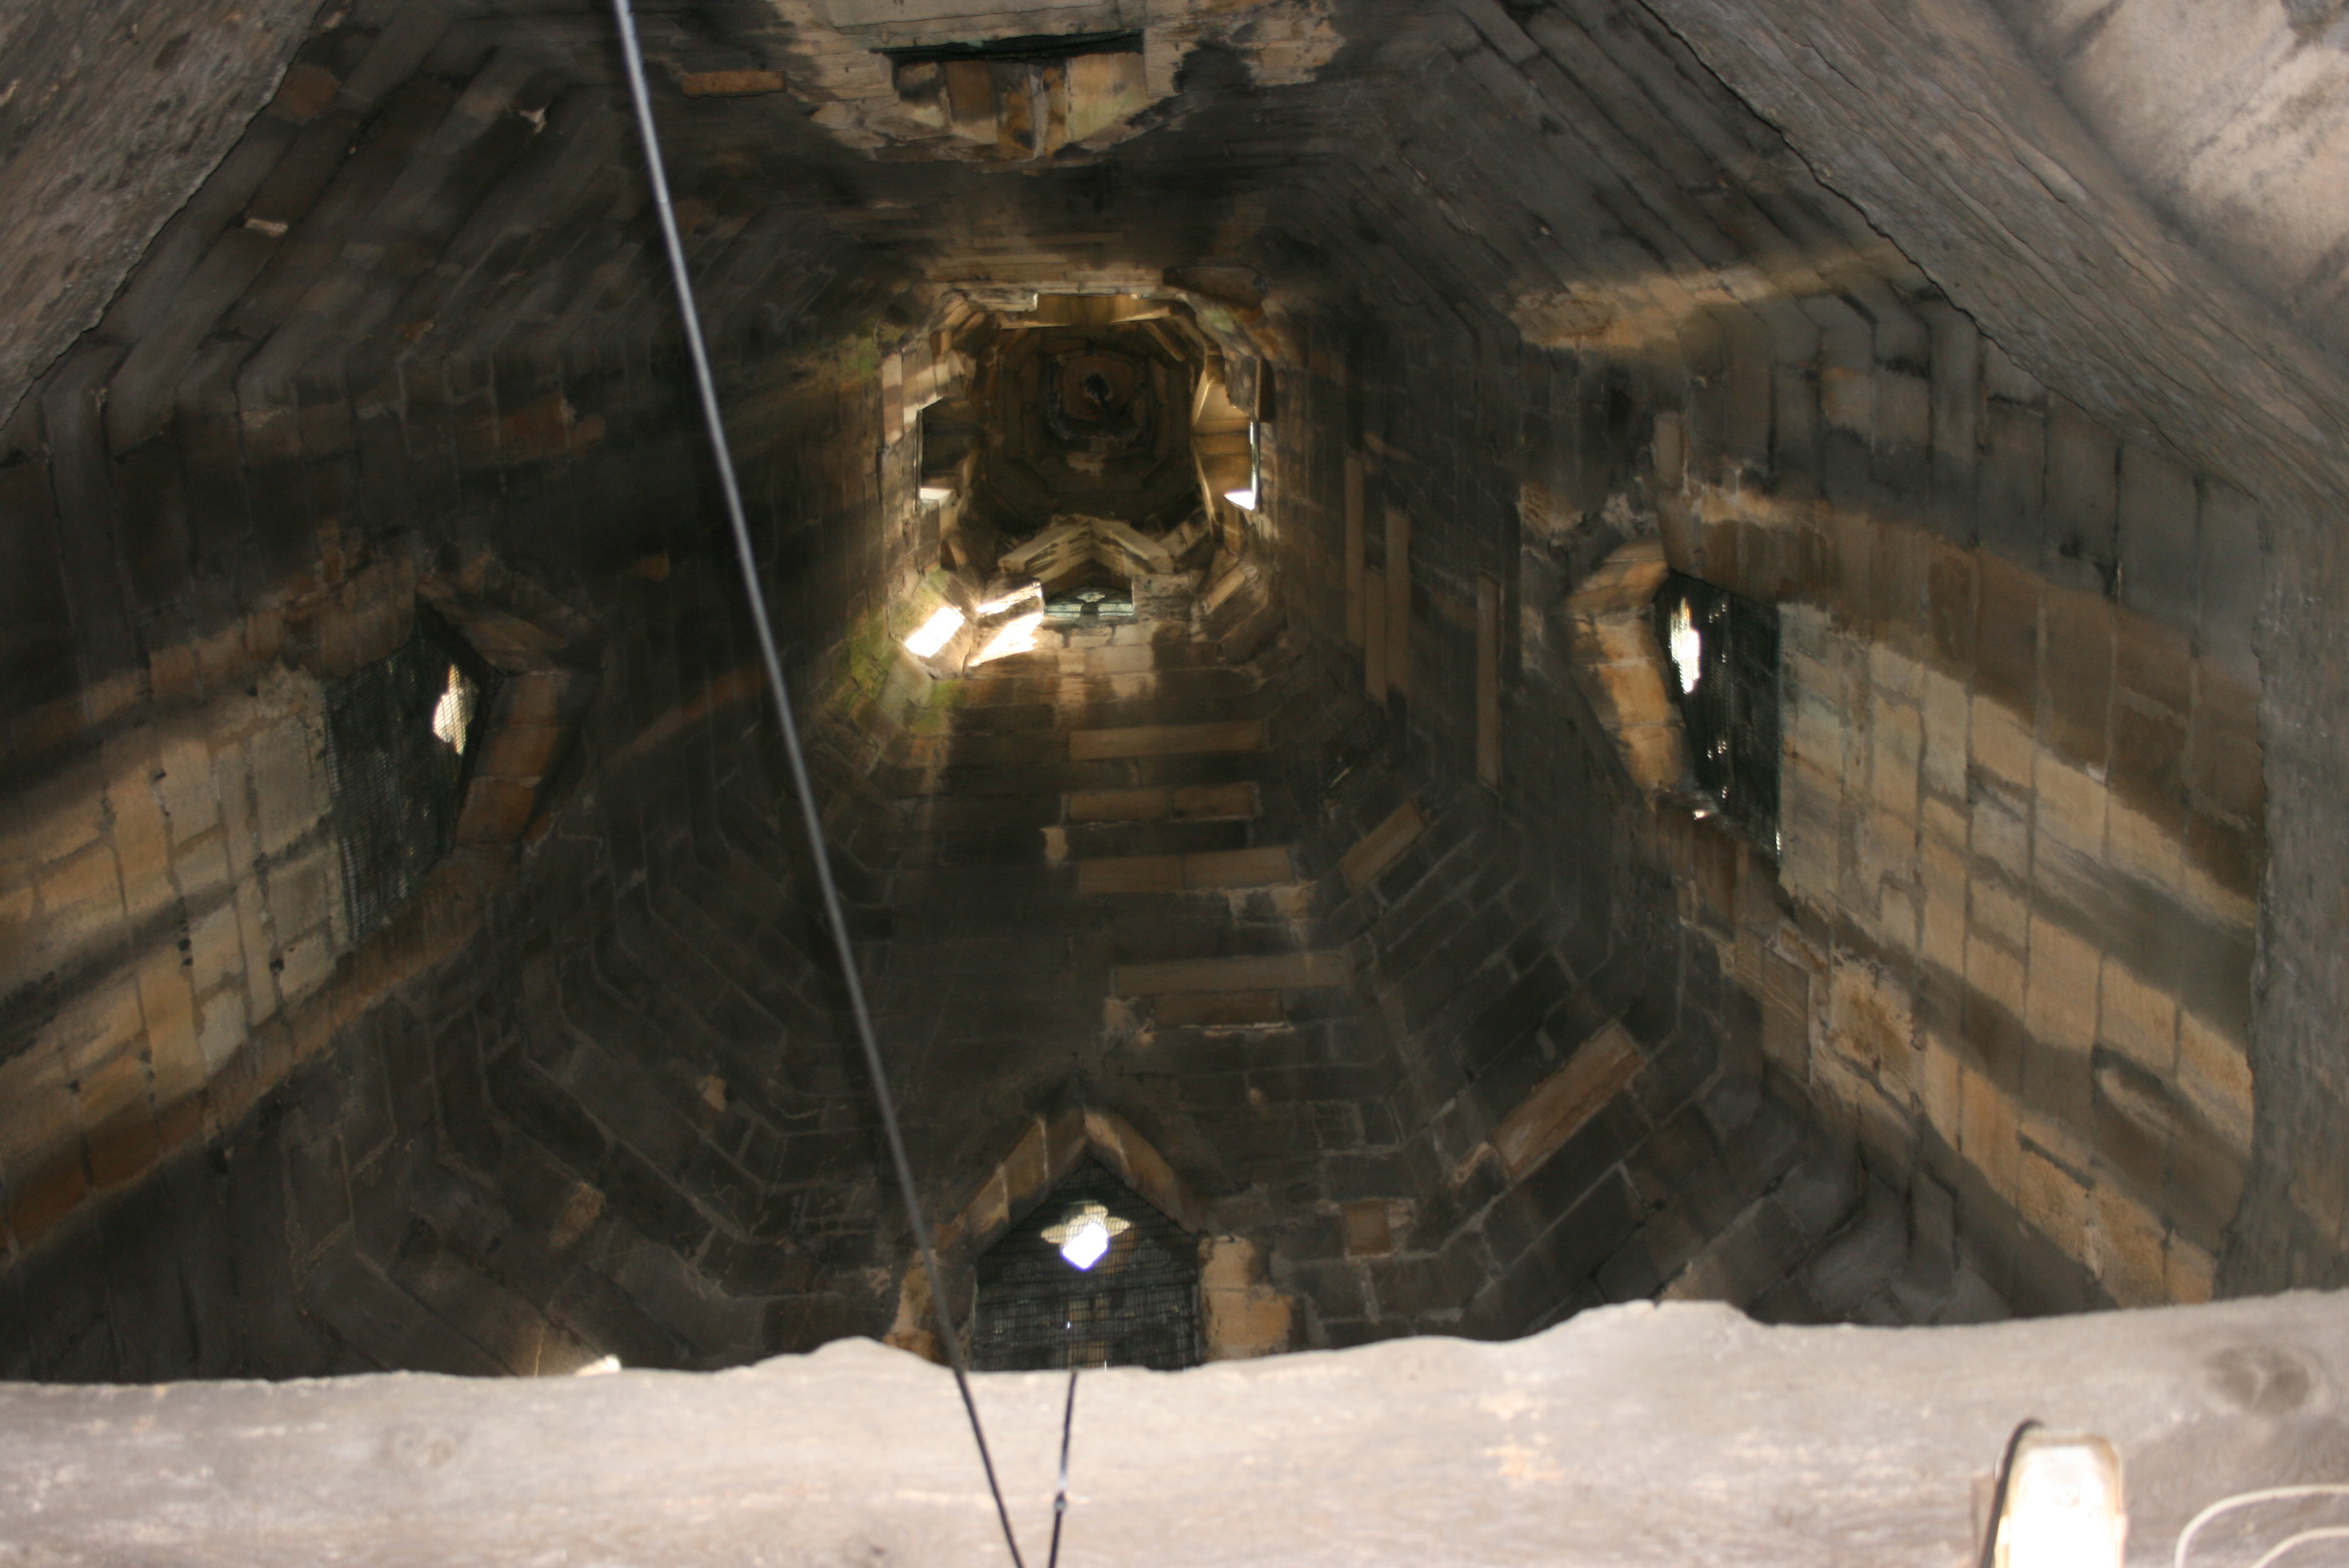 Looking up the tower